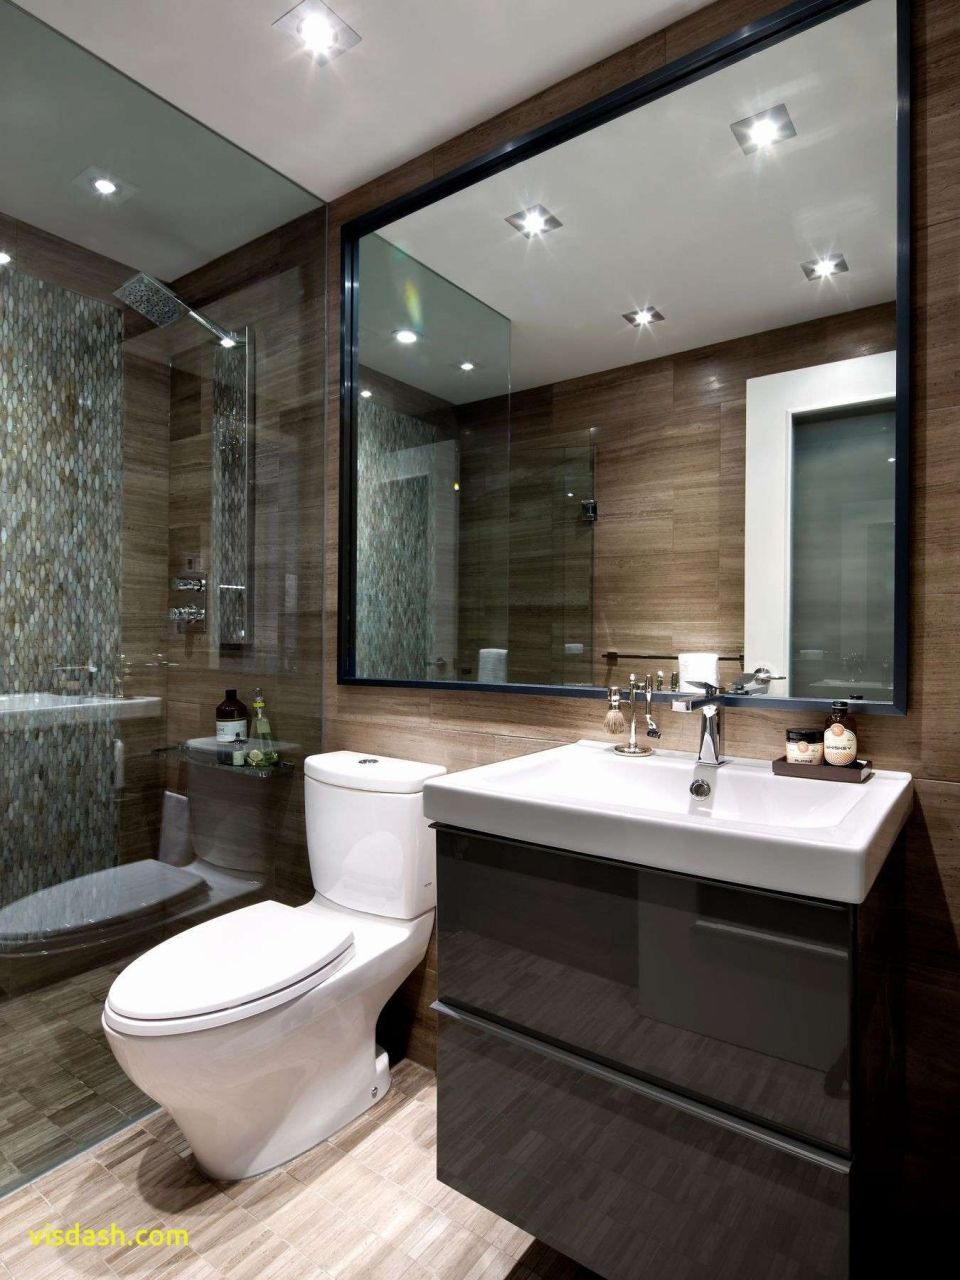 99 7 X 7 Bathroom Ideas Check More At Https Www Michelenails Com 55 7 X 7 Bathroom Ideas Bathroom Interior Design Bathroom Design Small Condo Bathroom